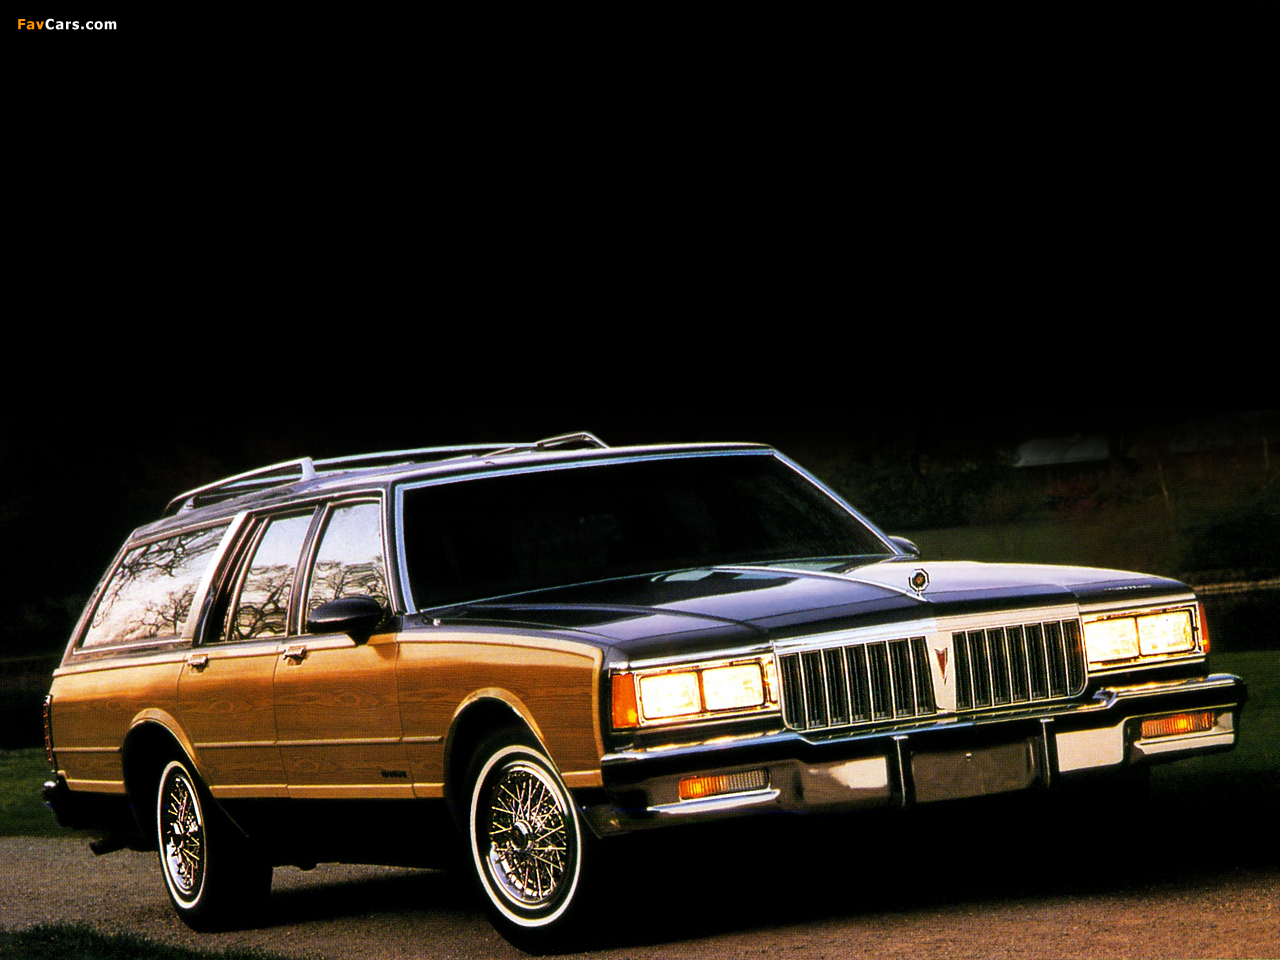 Pontiac Safari Station Wagon 1988 photos (1280 x 960)